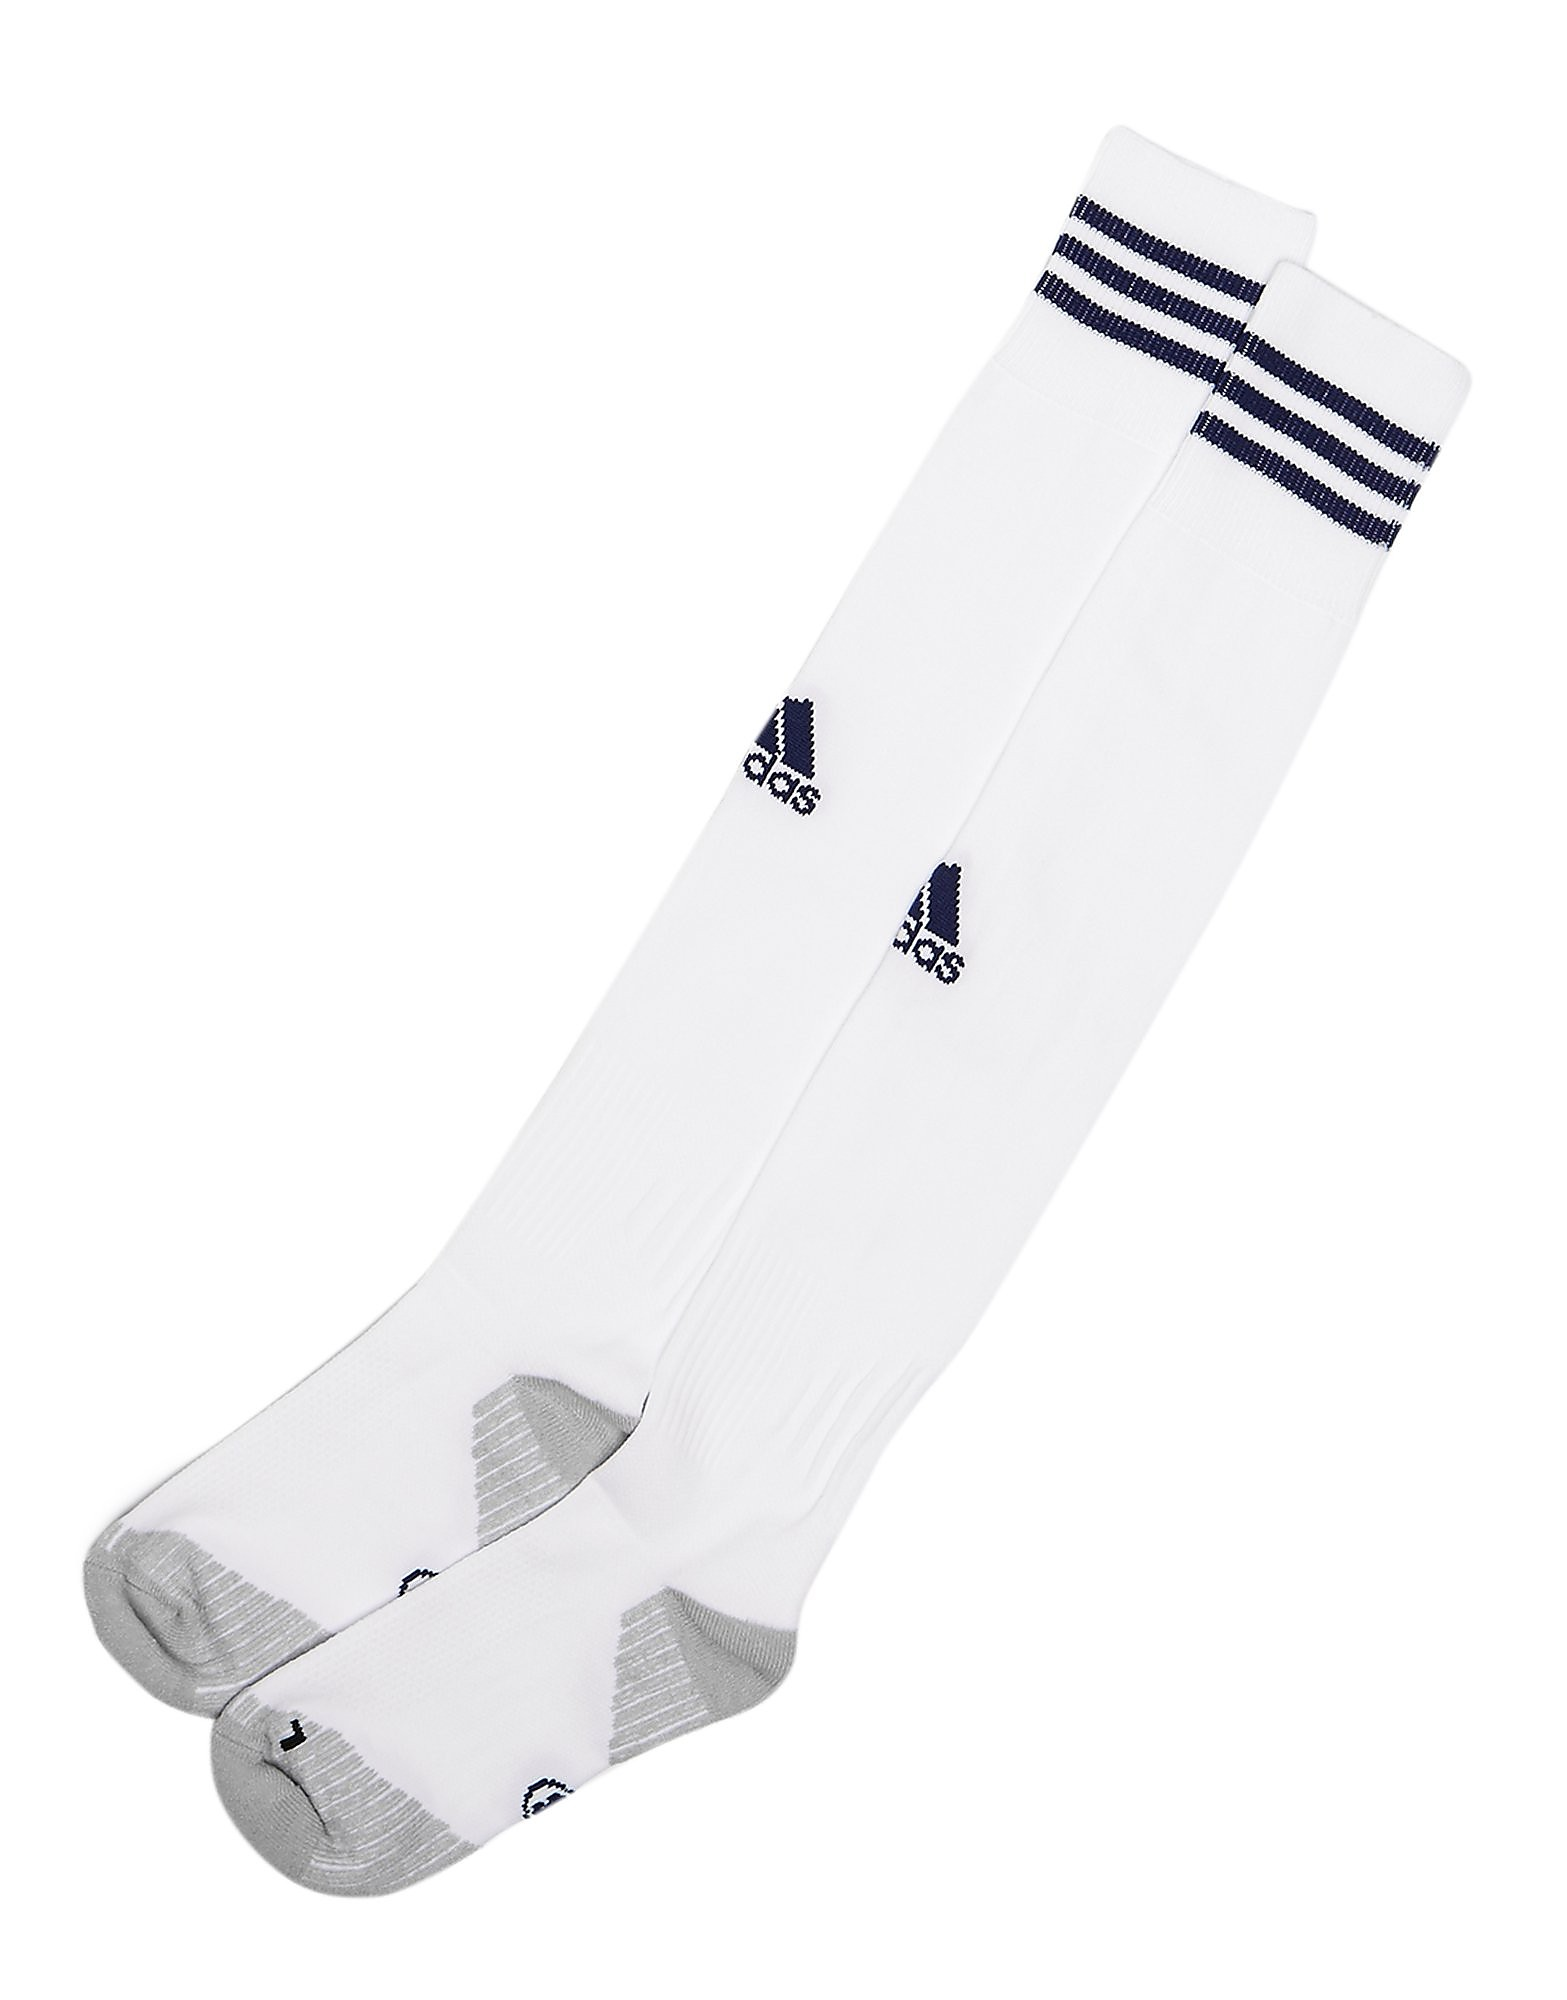 adidas Chaussettes West Brom Albion Home 17/18